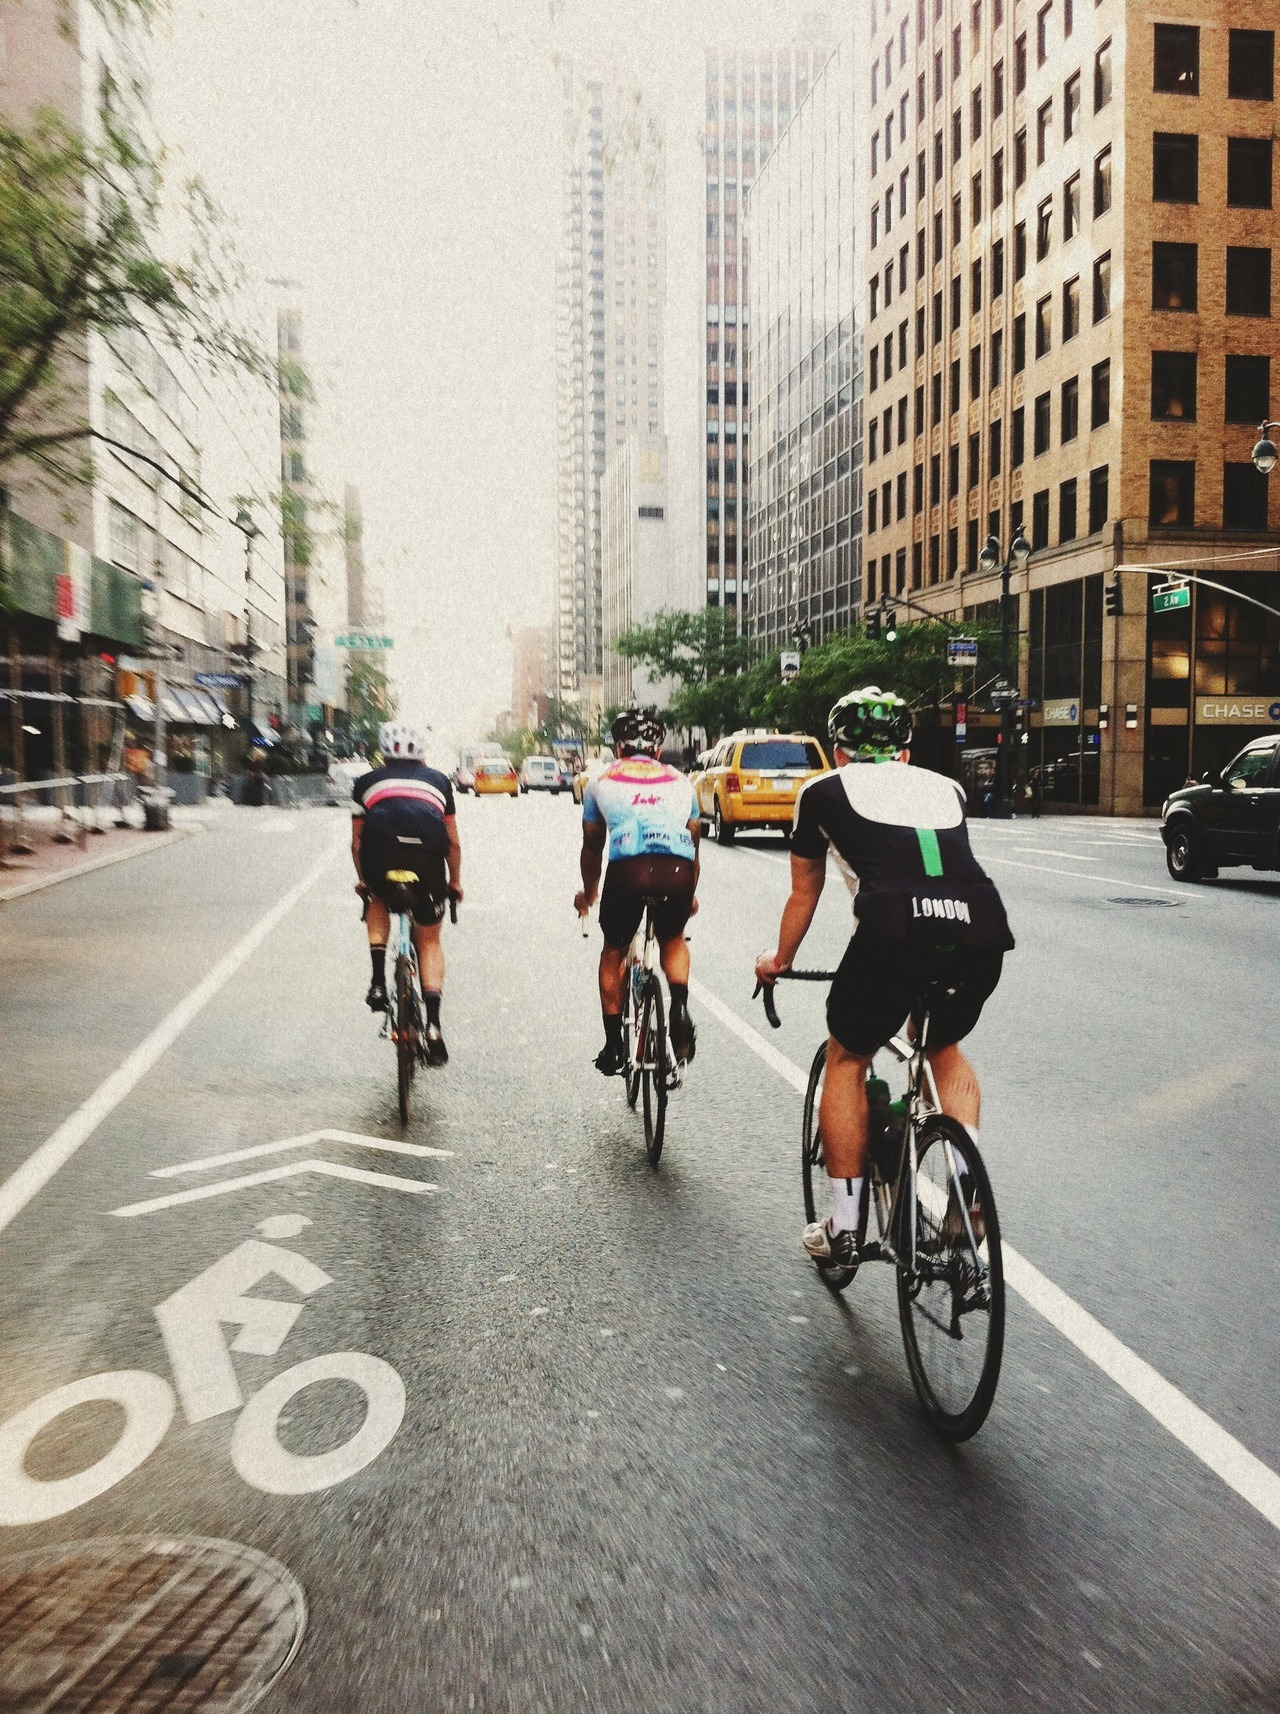 ESCAPE TO NEW YORK CENTURY RIDE (PHOTOS VIA CHRIS PINO)What better way to bid farewell to a New York summer than riding 100 miles with friends, both old and new. The NYCC did a great job in terms of organizing and supporting the event. Will definitely sign up for it again next year. Kudos to everyone who participated.